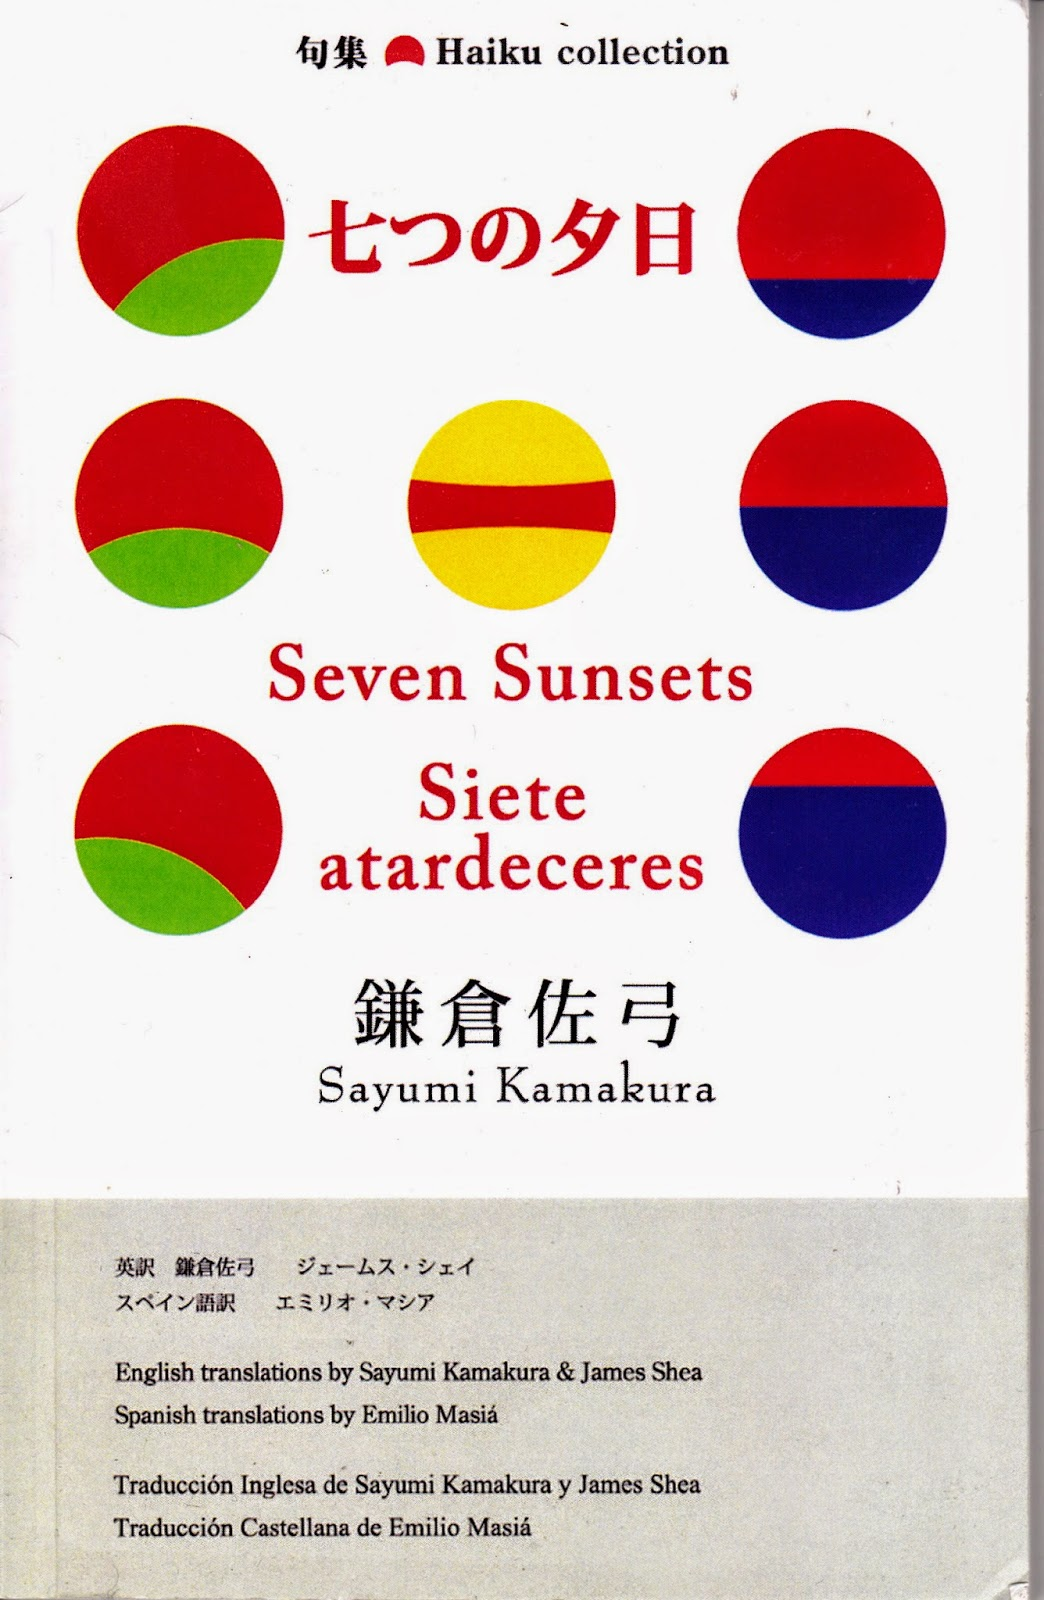 kamesan haiku auml ordm atilde atilde auml iquest sup aring yen blog haiku a feminist perspective an haiku a feminist perspective an essay about haiku collection seven sunsets by sayumi kamakura